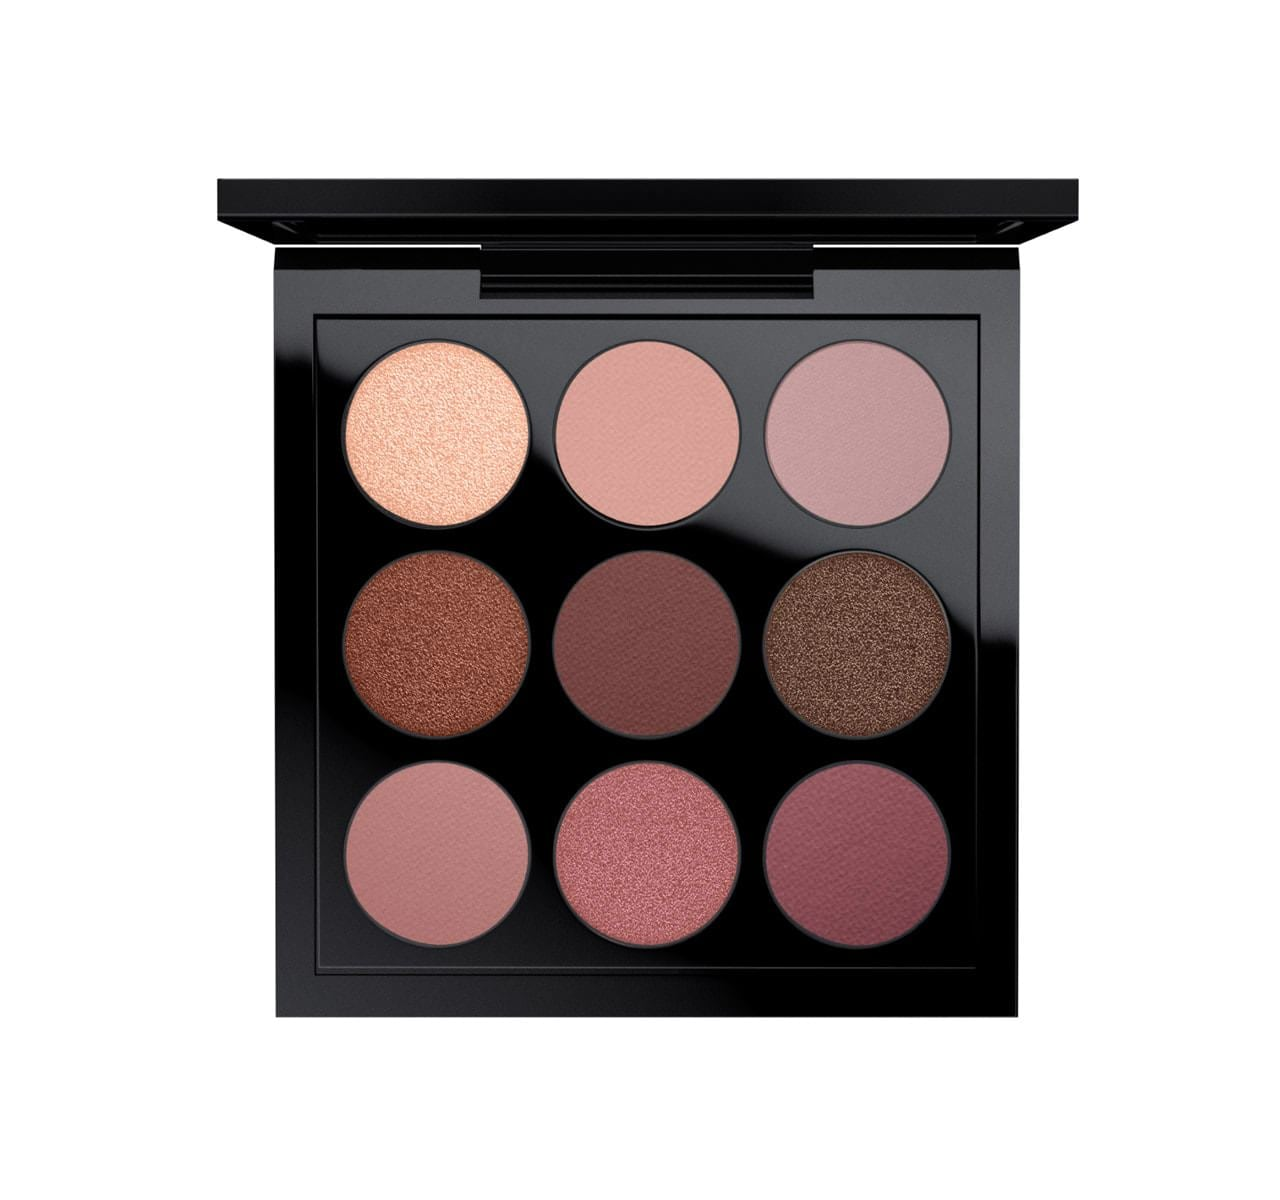 Eye Shadow X 9 Burgundy Times Nine Mac Cosmetics Official Site